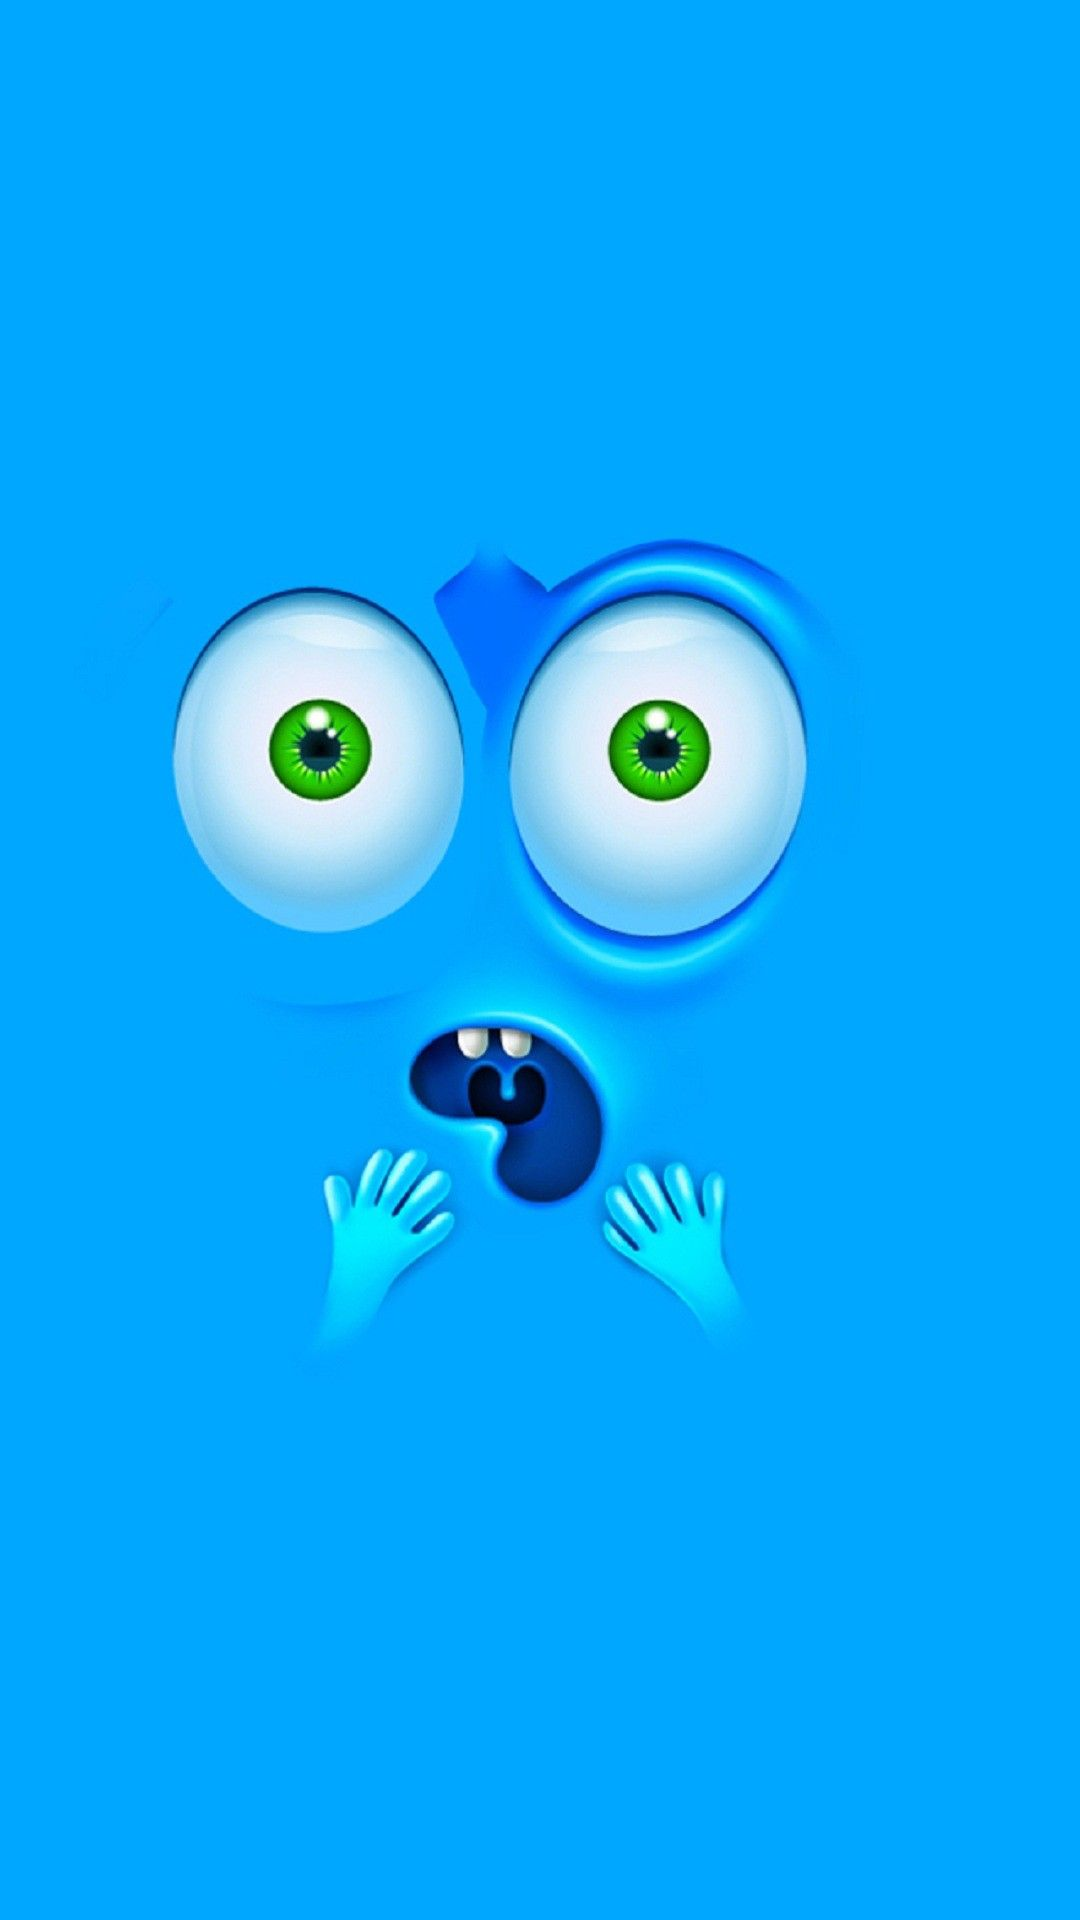 Wallpapers, Abstract, Minimal, Funny, Funny Blue Faces, Free, D